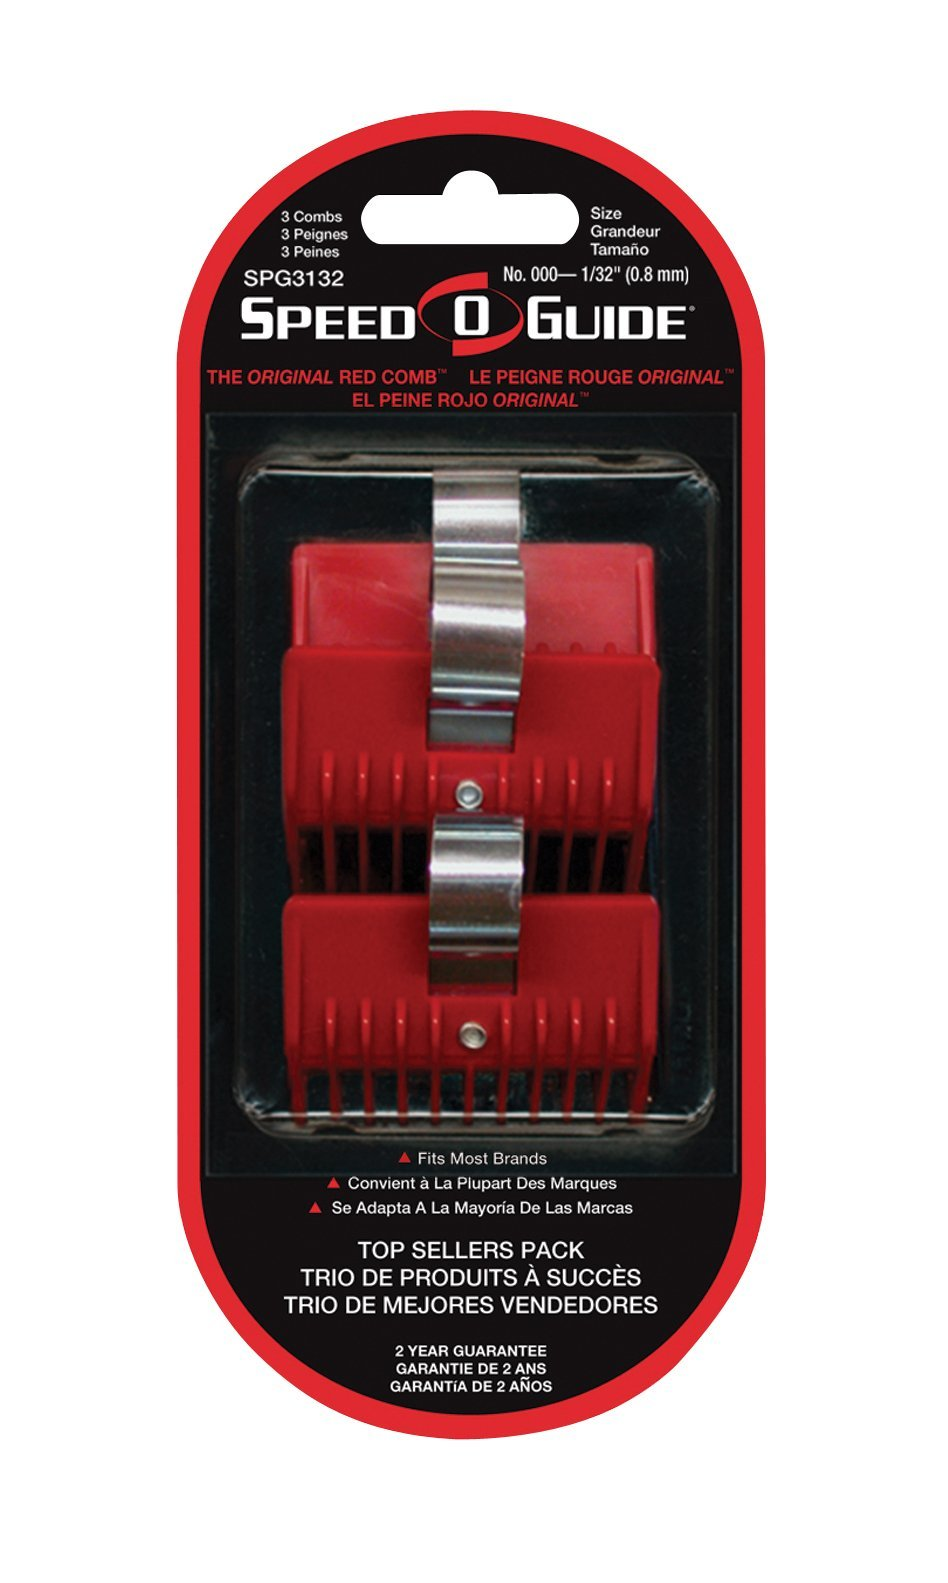 SPEED-O-GUIDE Universal Clipper Comb Attachments Size 000 1/32 inch 3 Pack 3132